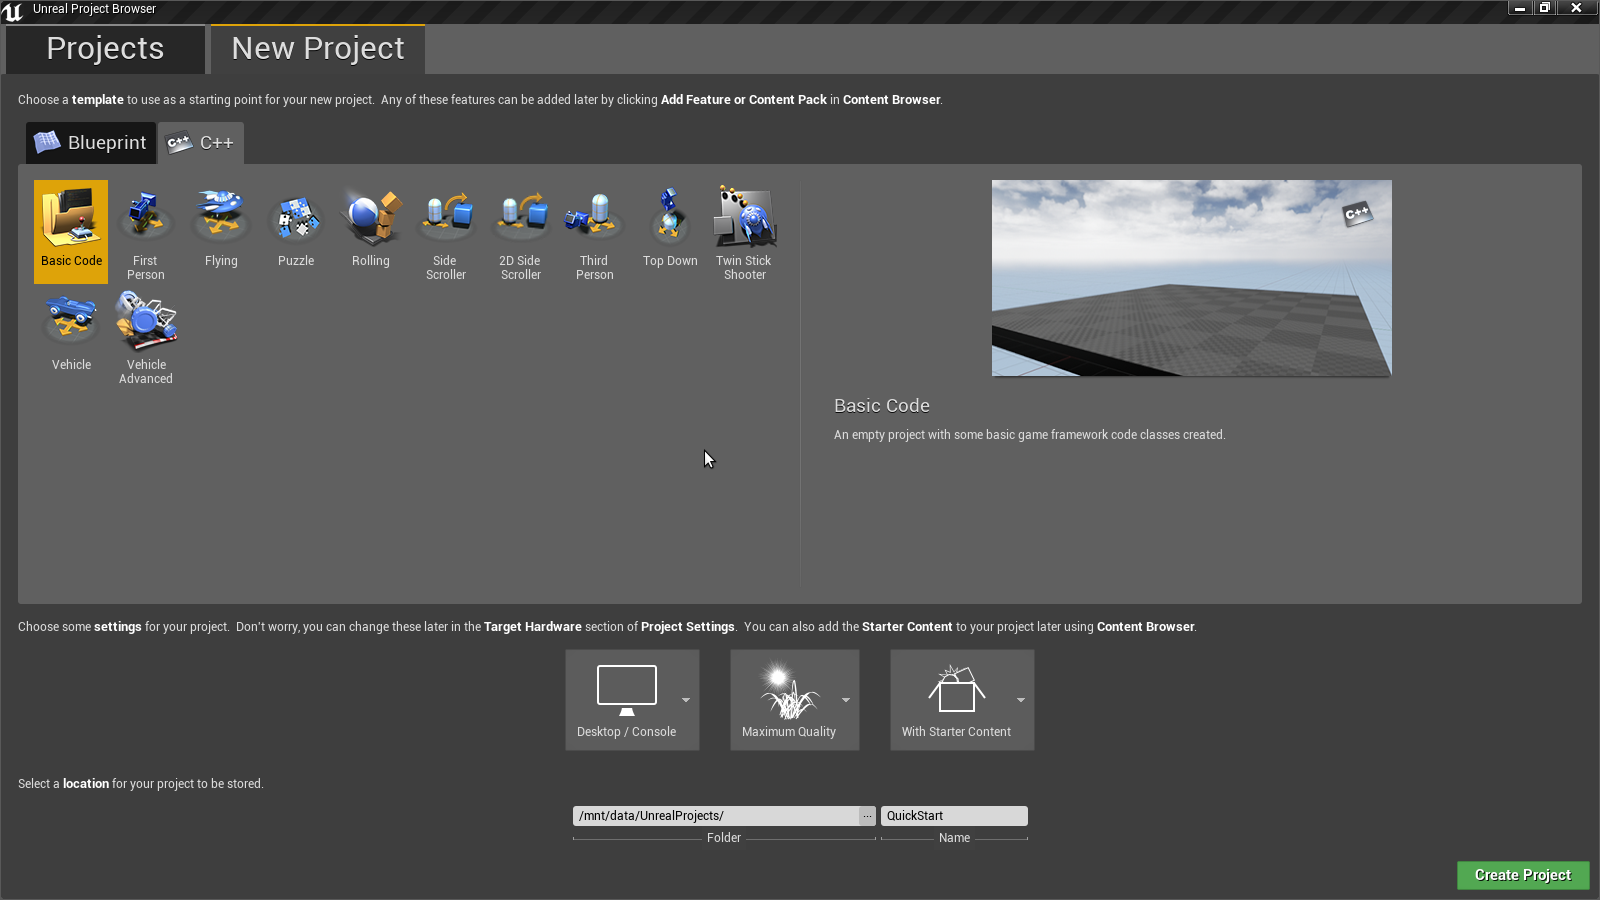 Unreal Engine: QuickStart in Qt Creator under Arch Linux